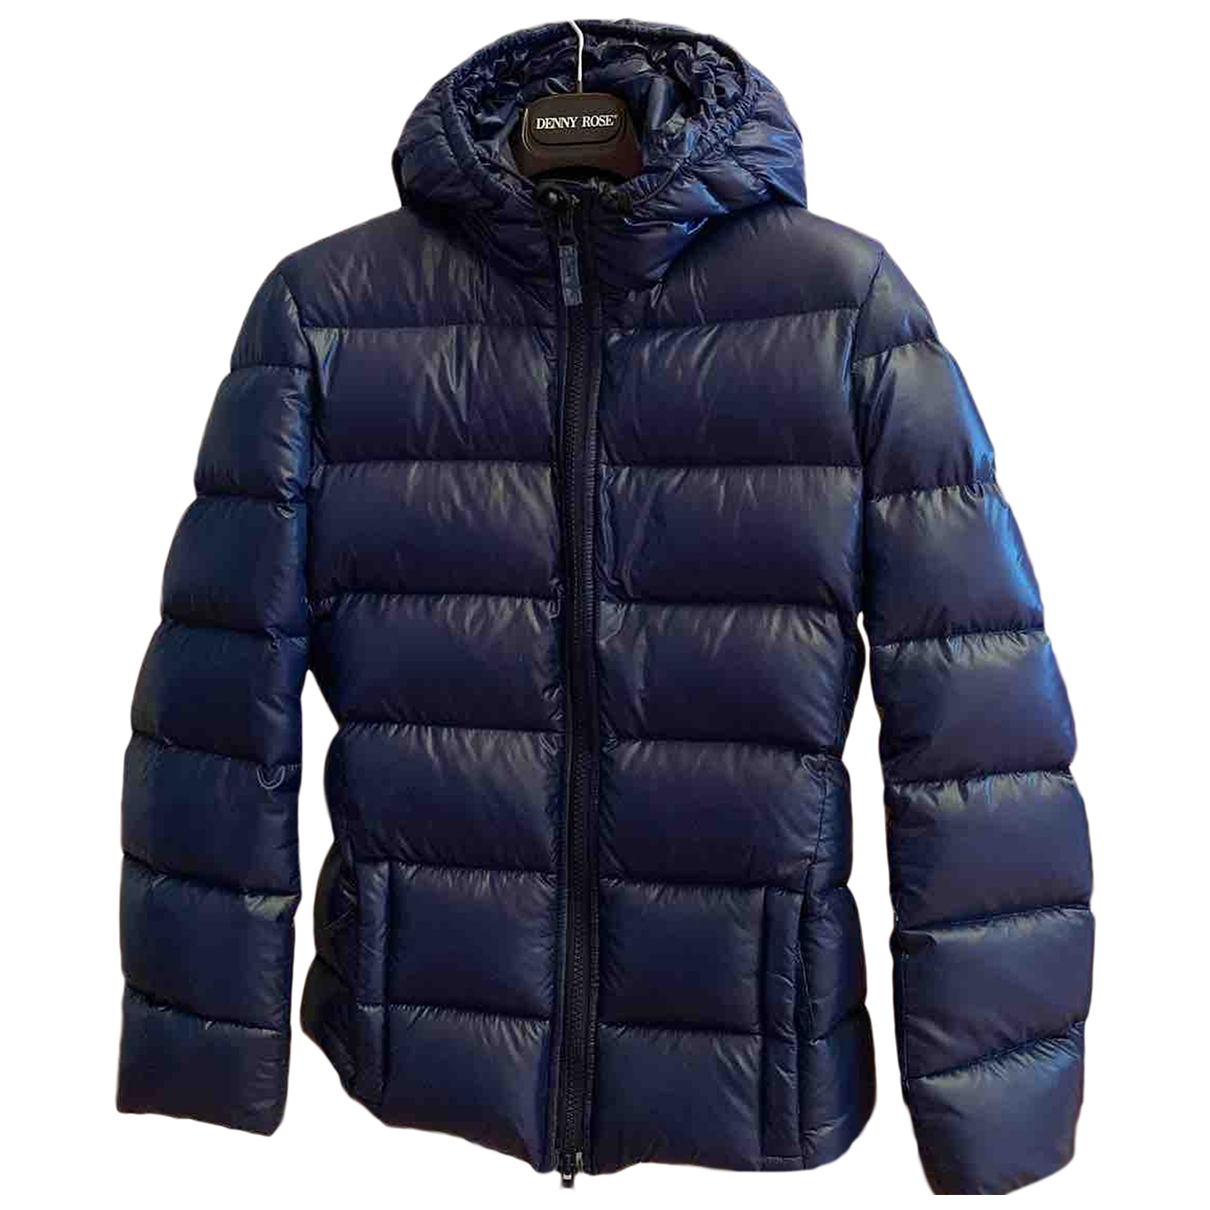 Aspesi \N Blue jacket for Women S International